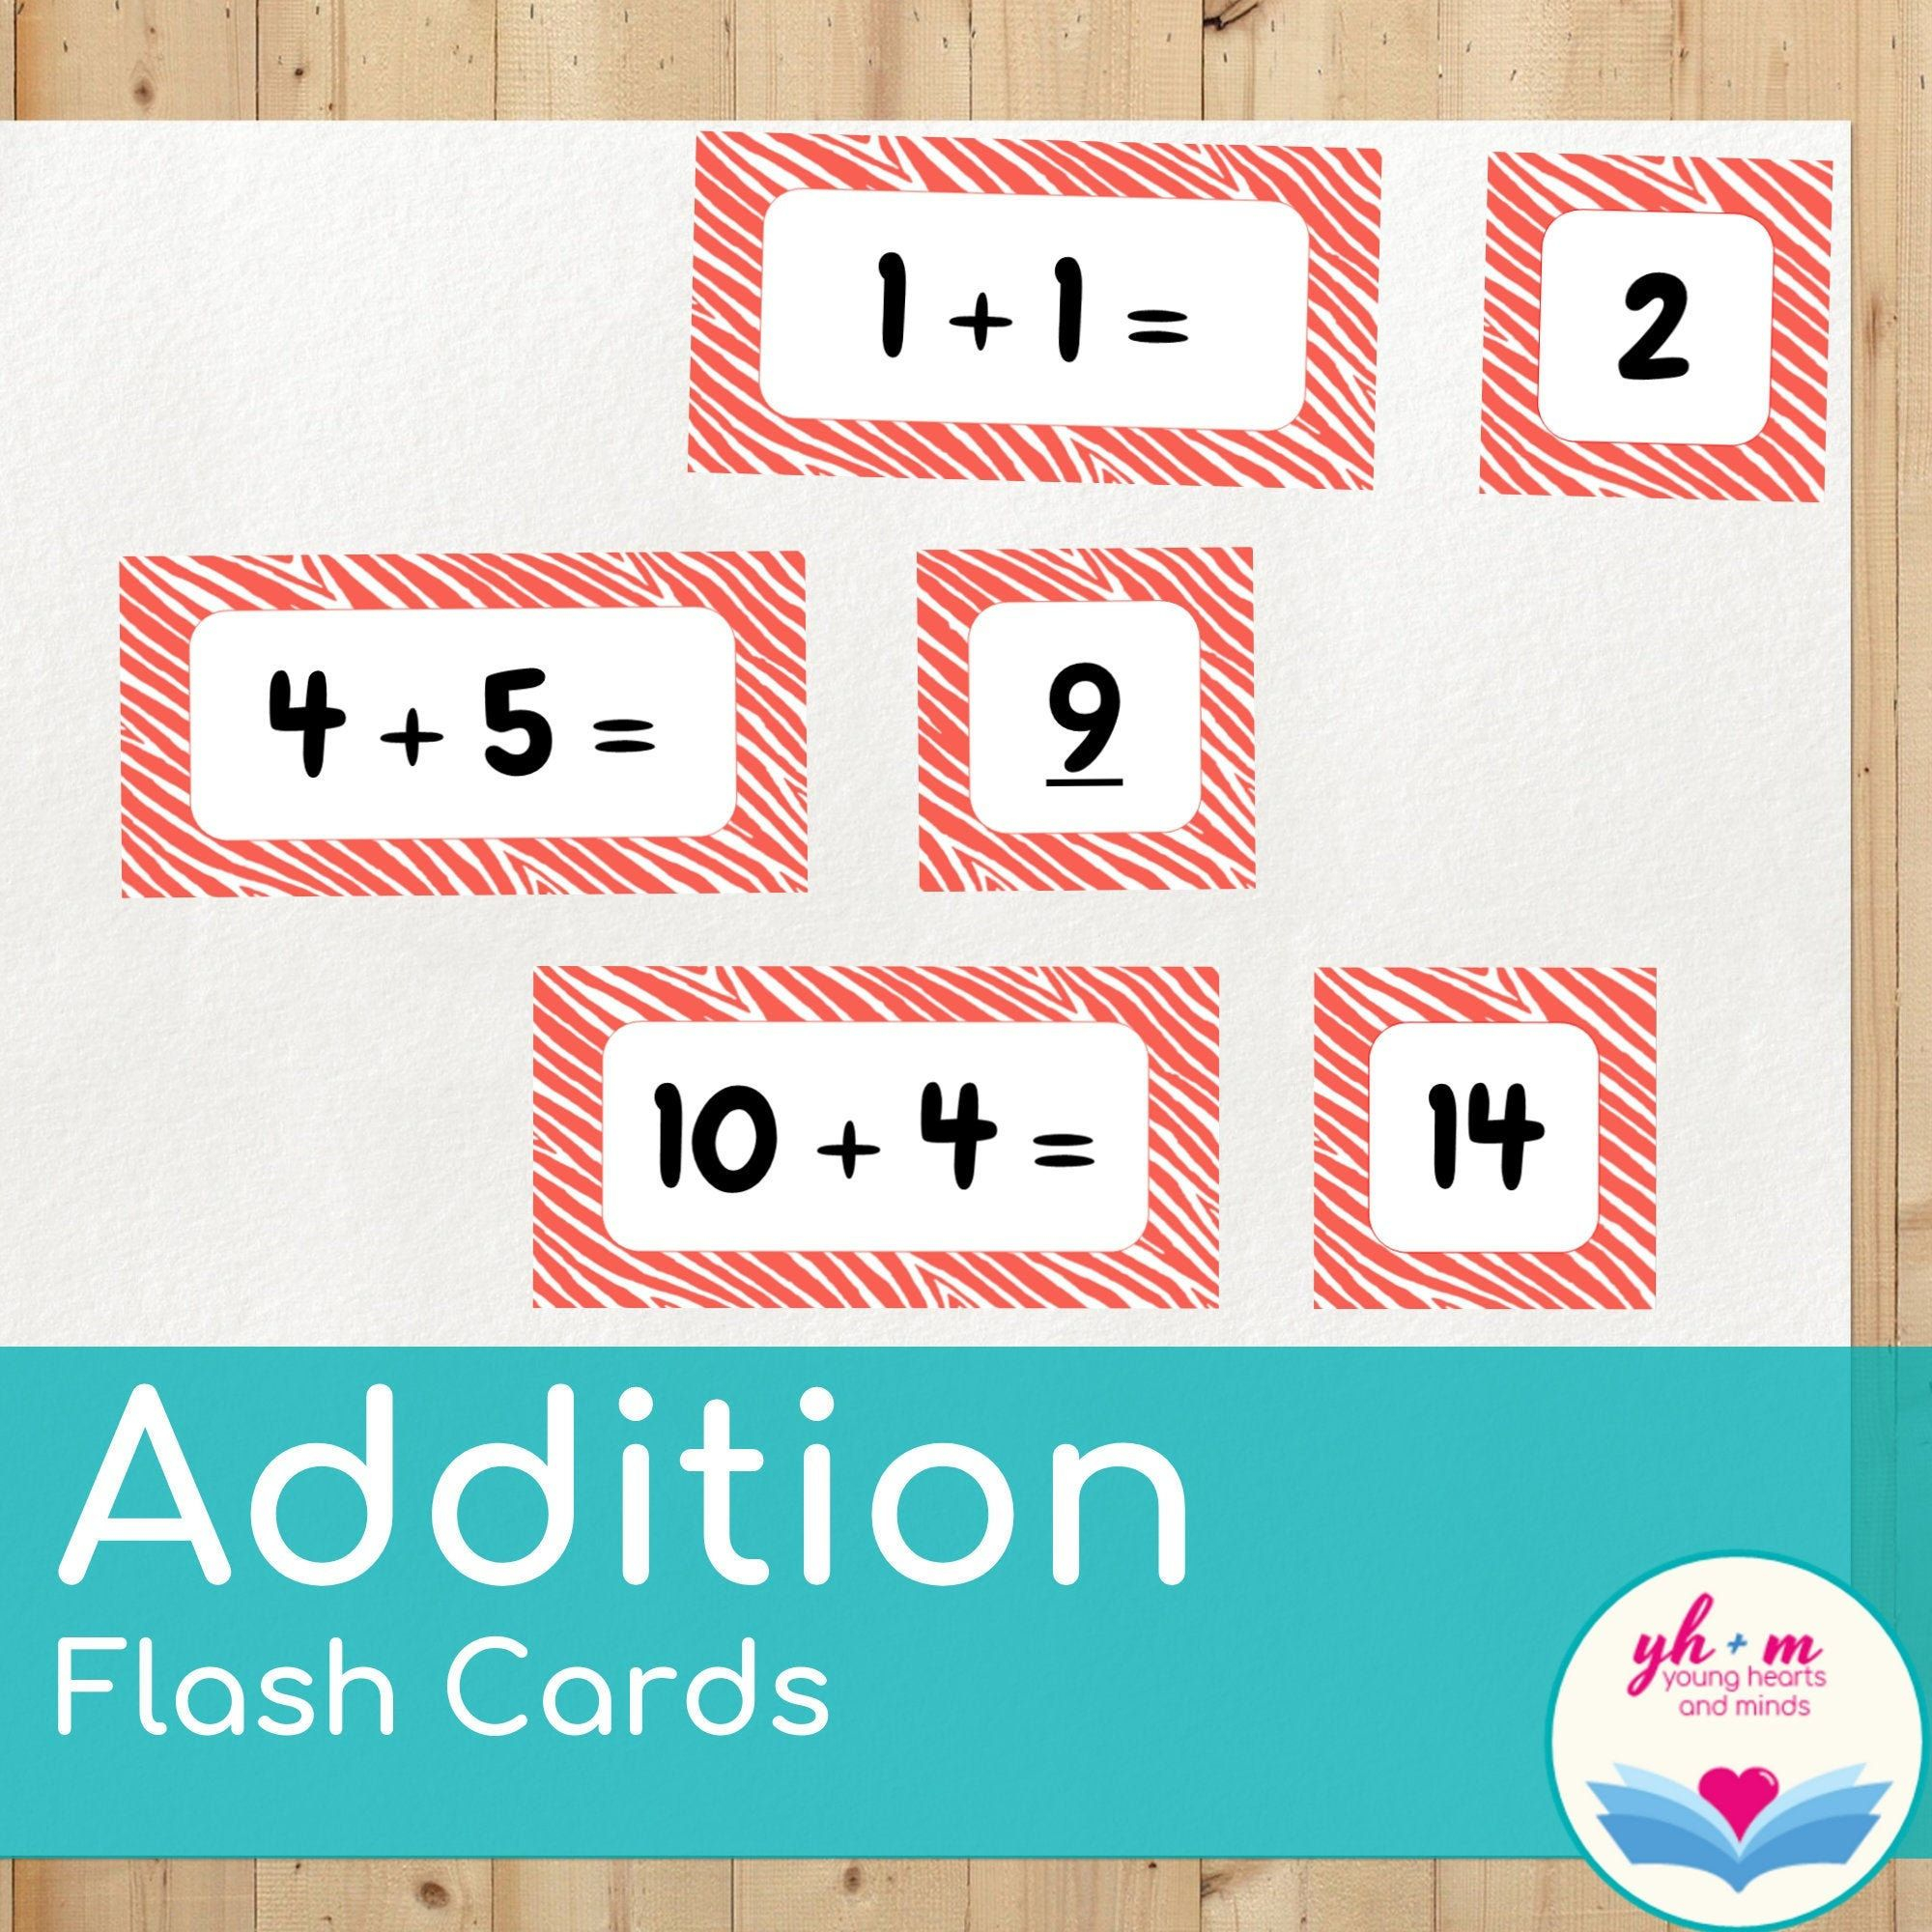 Addition Flash Cards - Math Fact Practice Adding 0 - 10, For